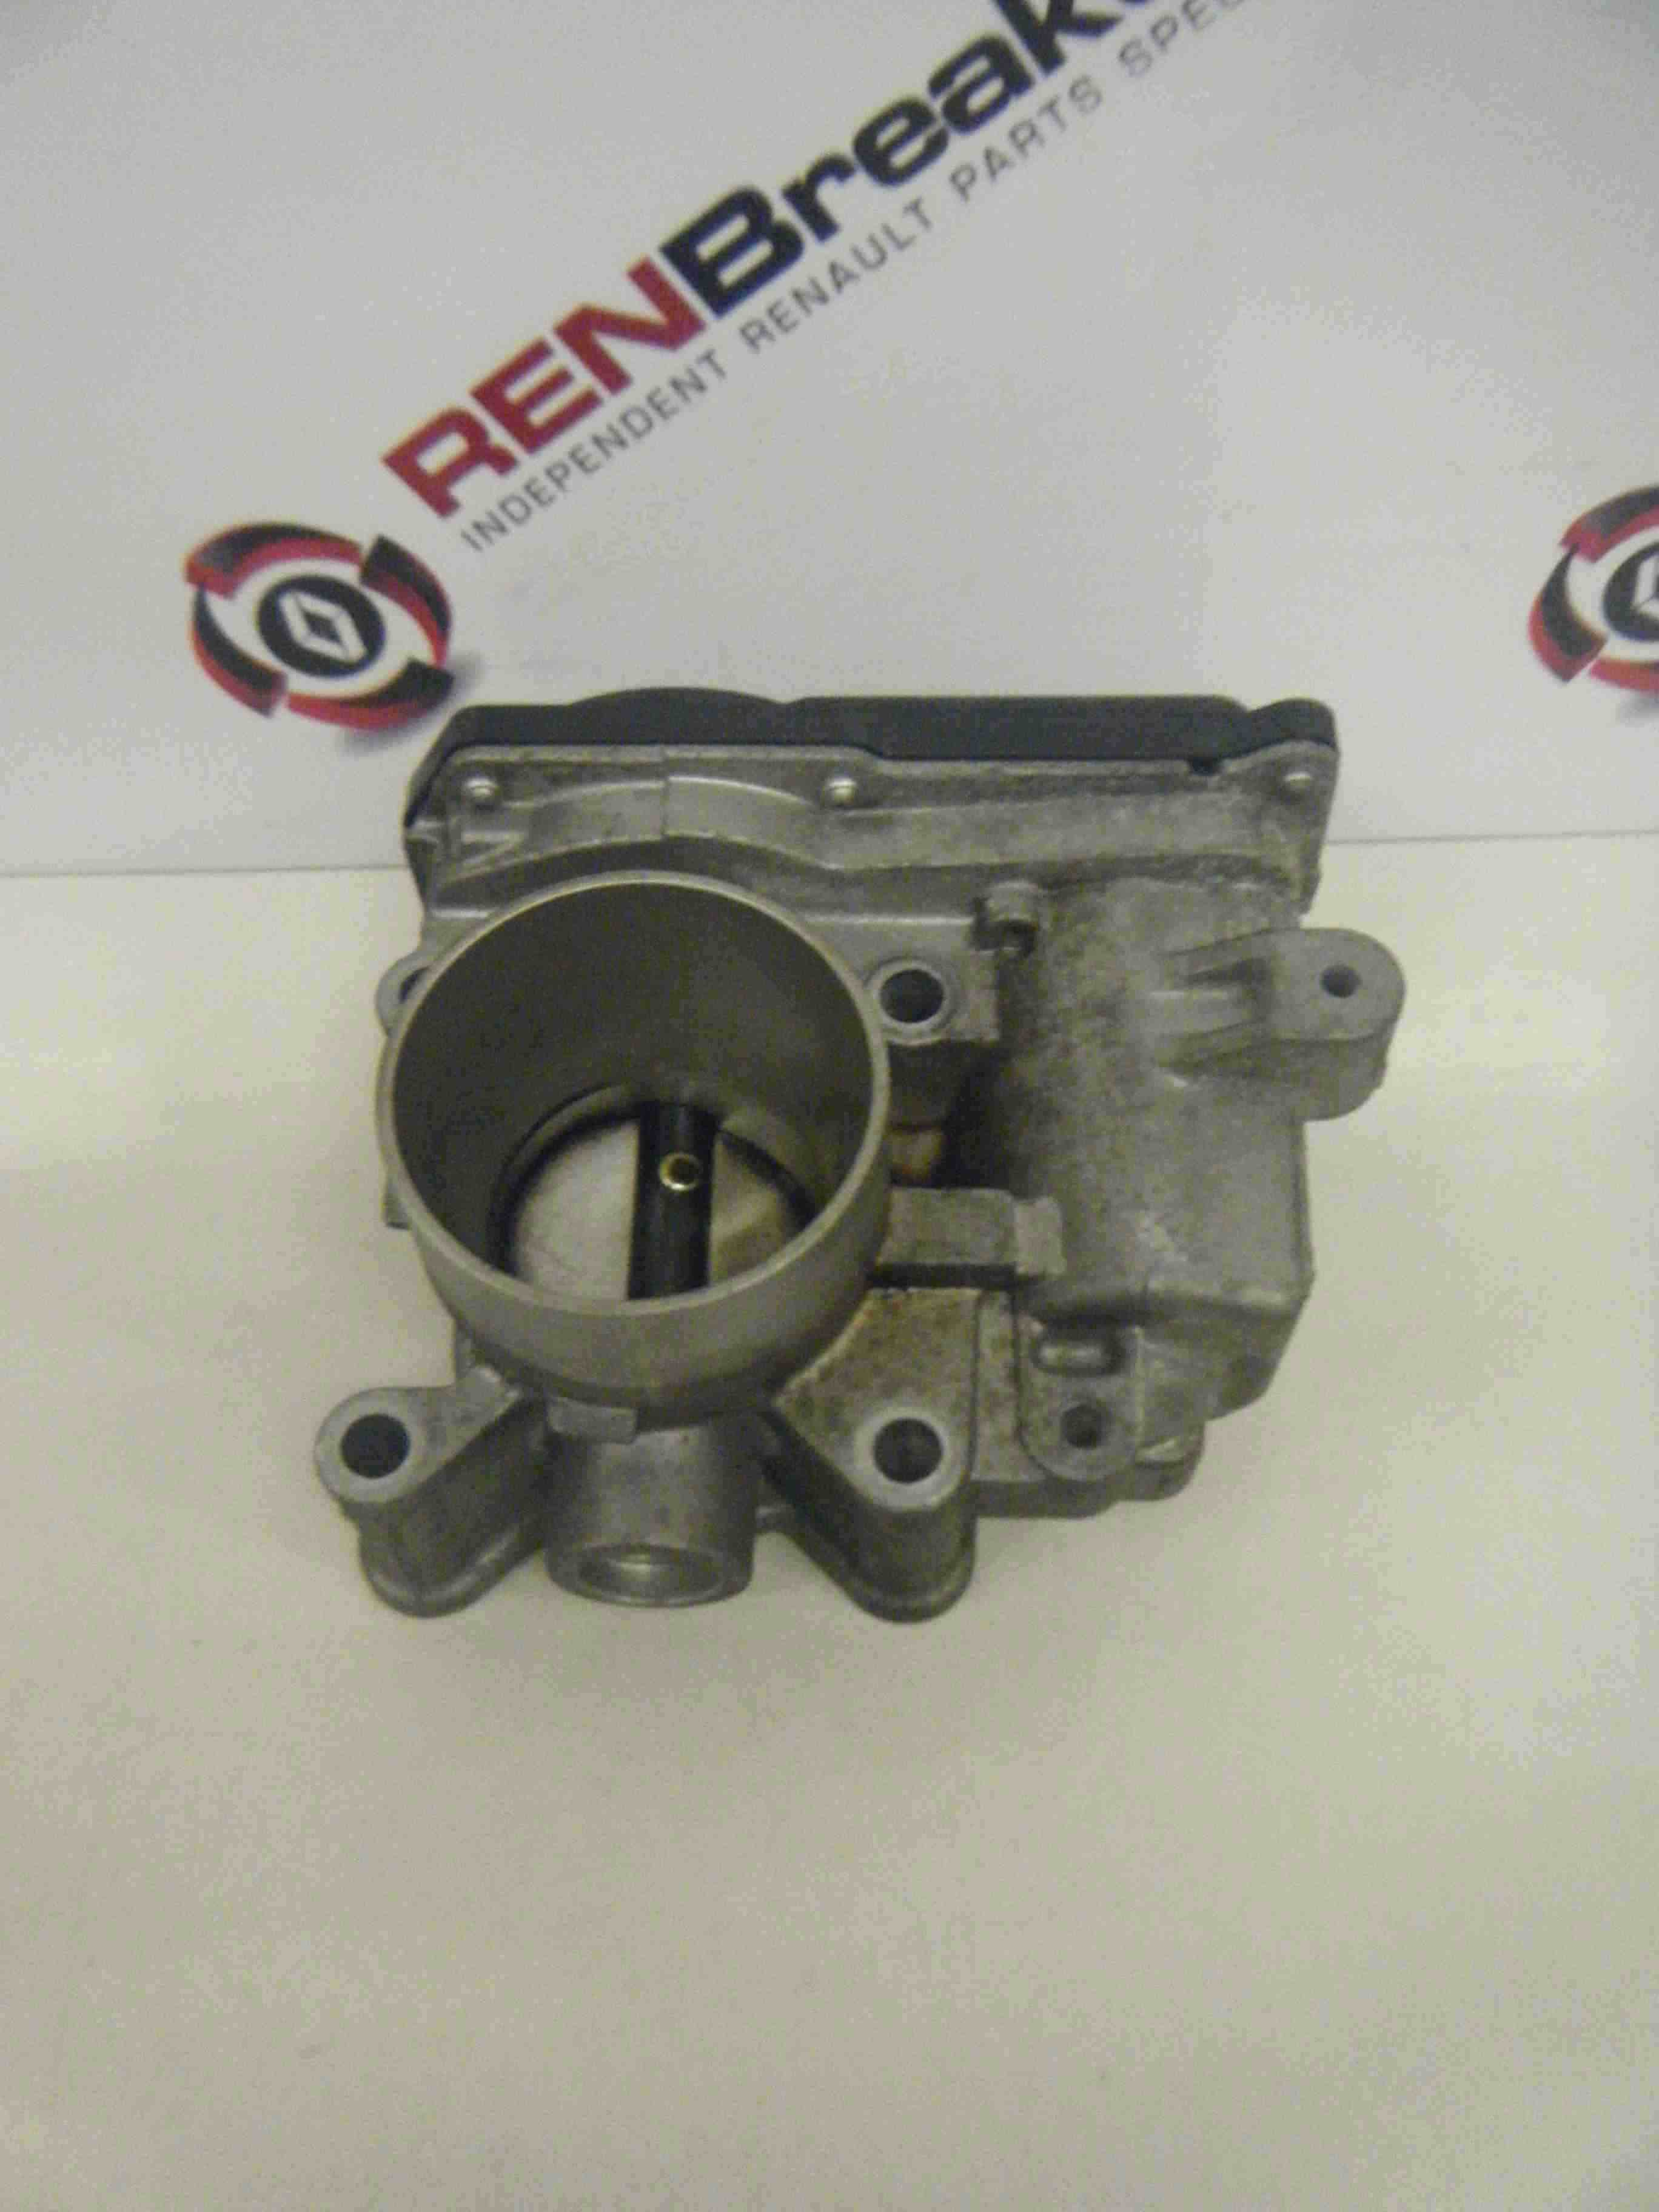 Renault Clio MK3 + Modus 2005-2012 1.2 16v D4F 740 Throttle Body 8200568712c